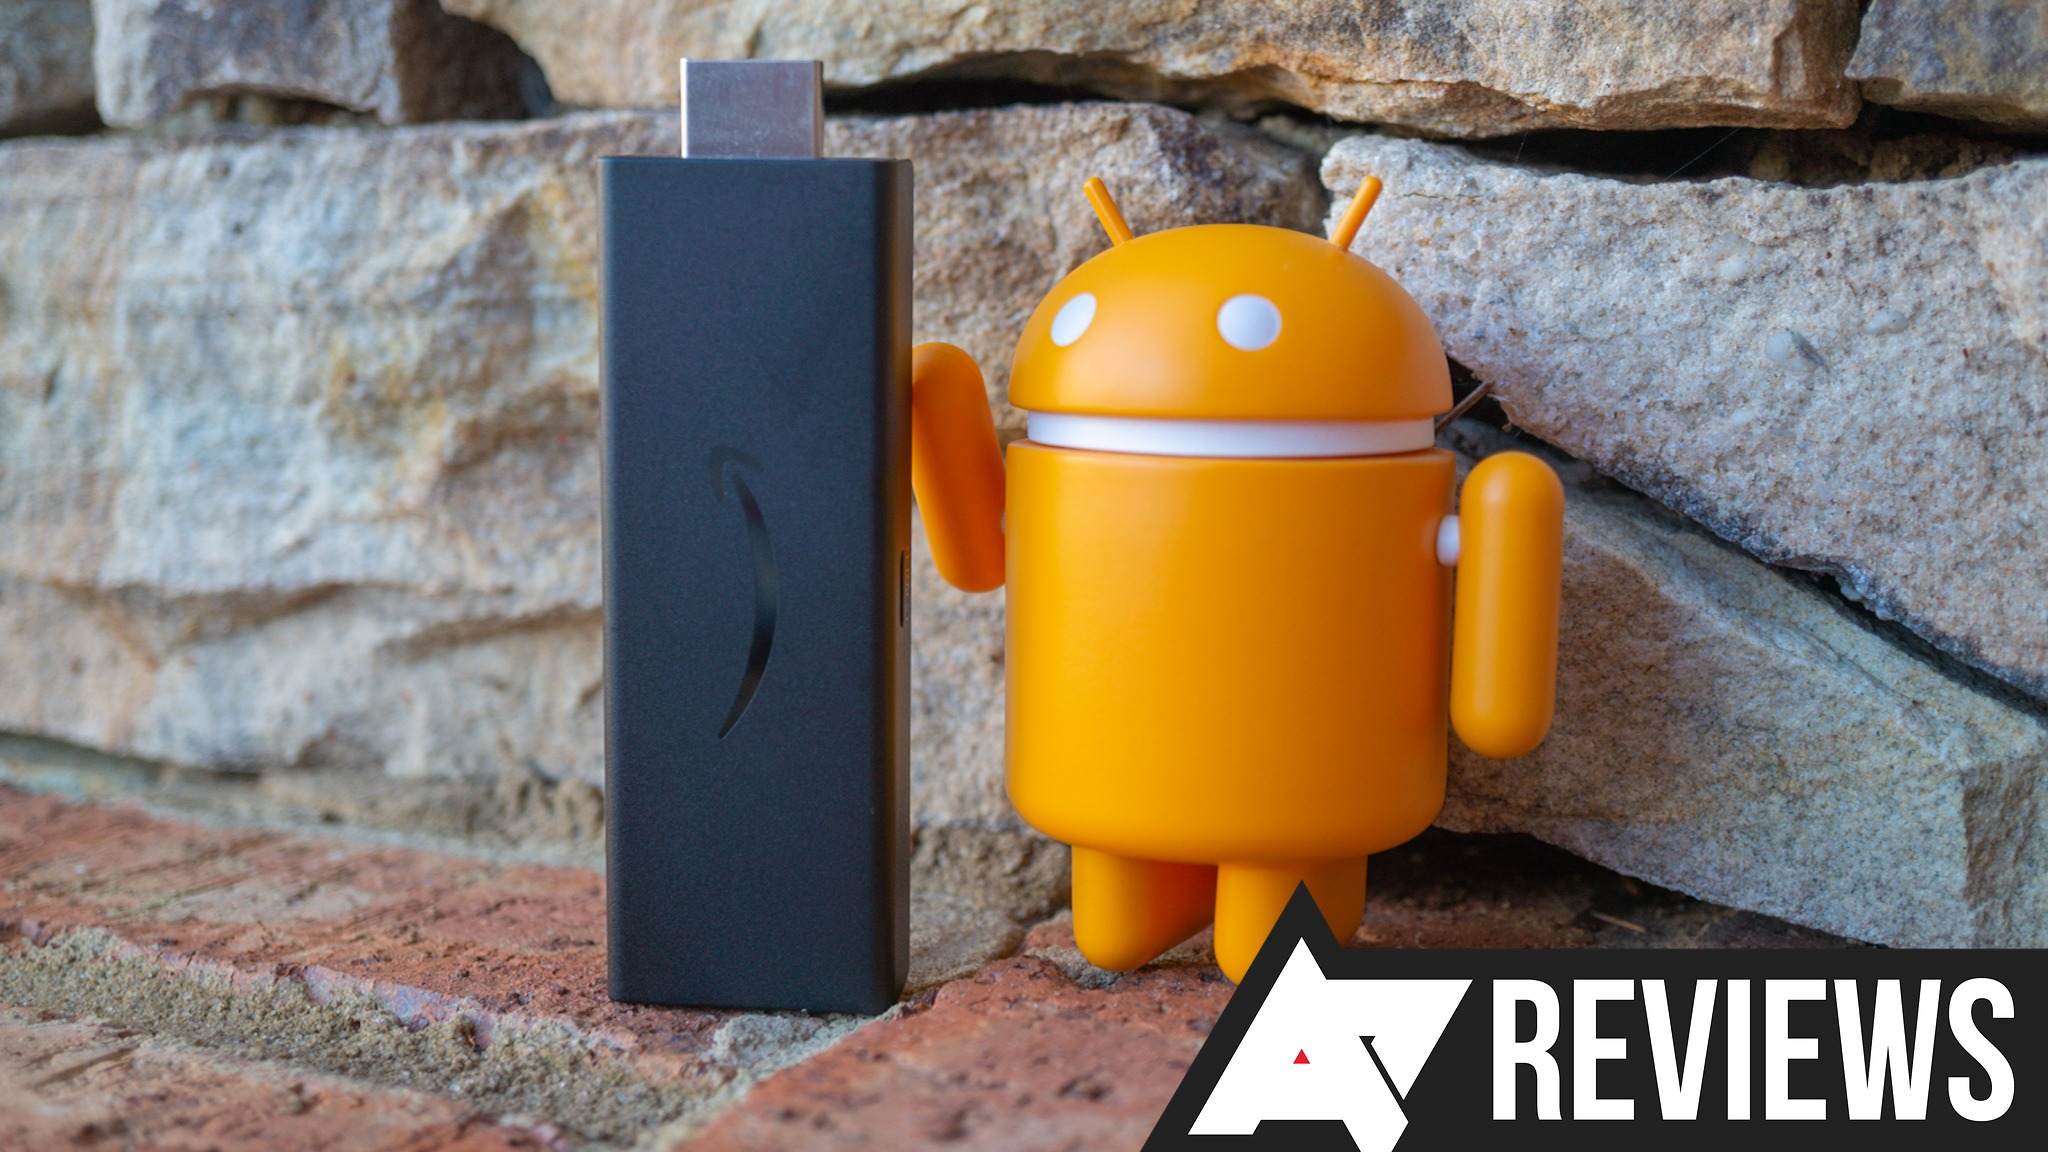 Amazon Fire TV Stick (3rd Gen) review: You should probably buy a Chromecast